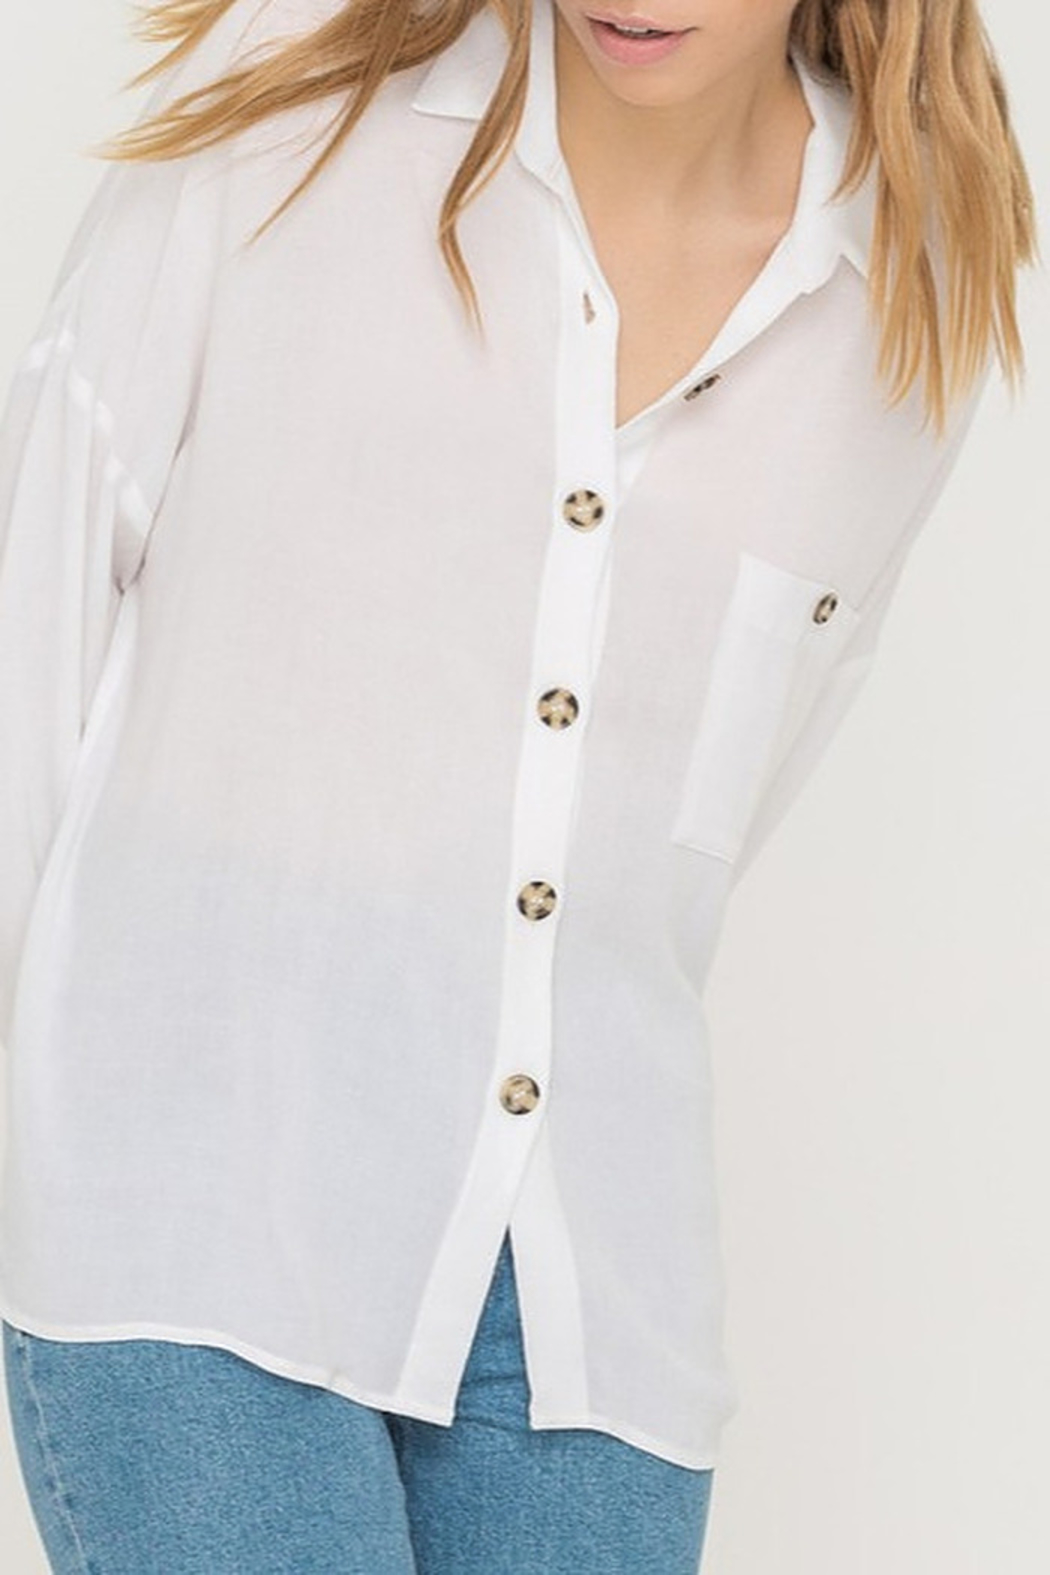 All In Favor Oversized Buttoned Tunic Blouse - Main Image